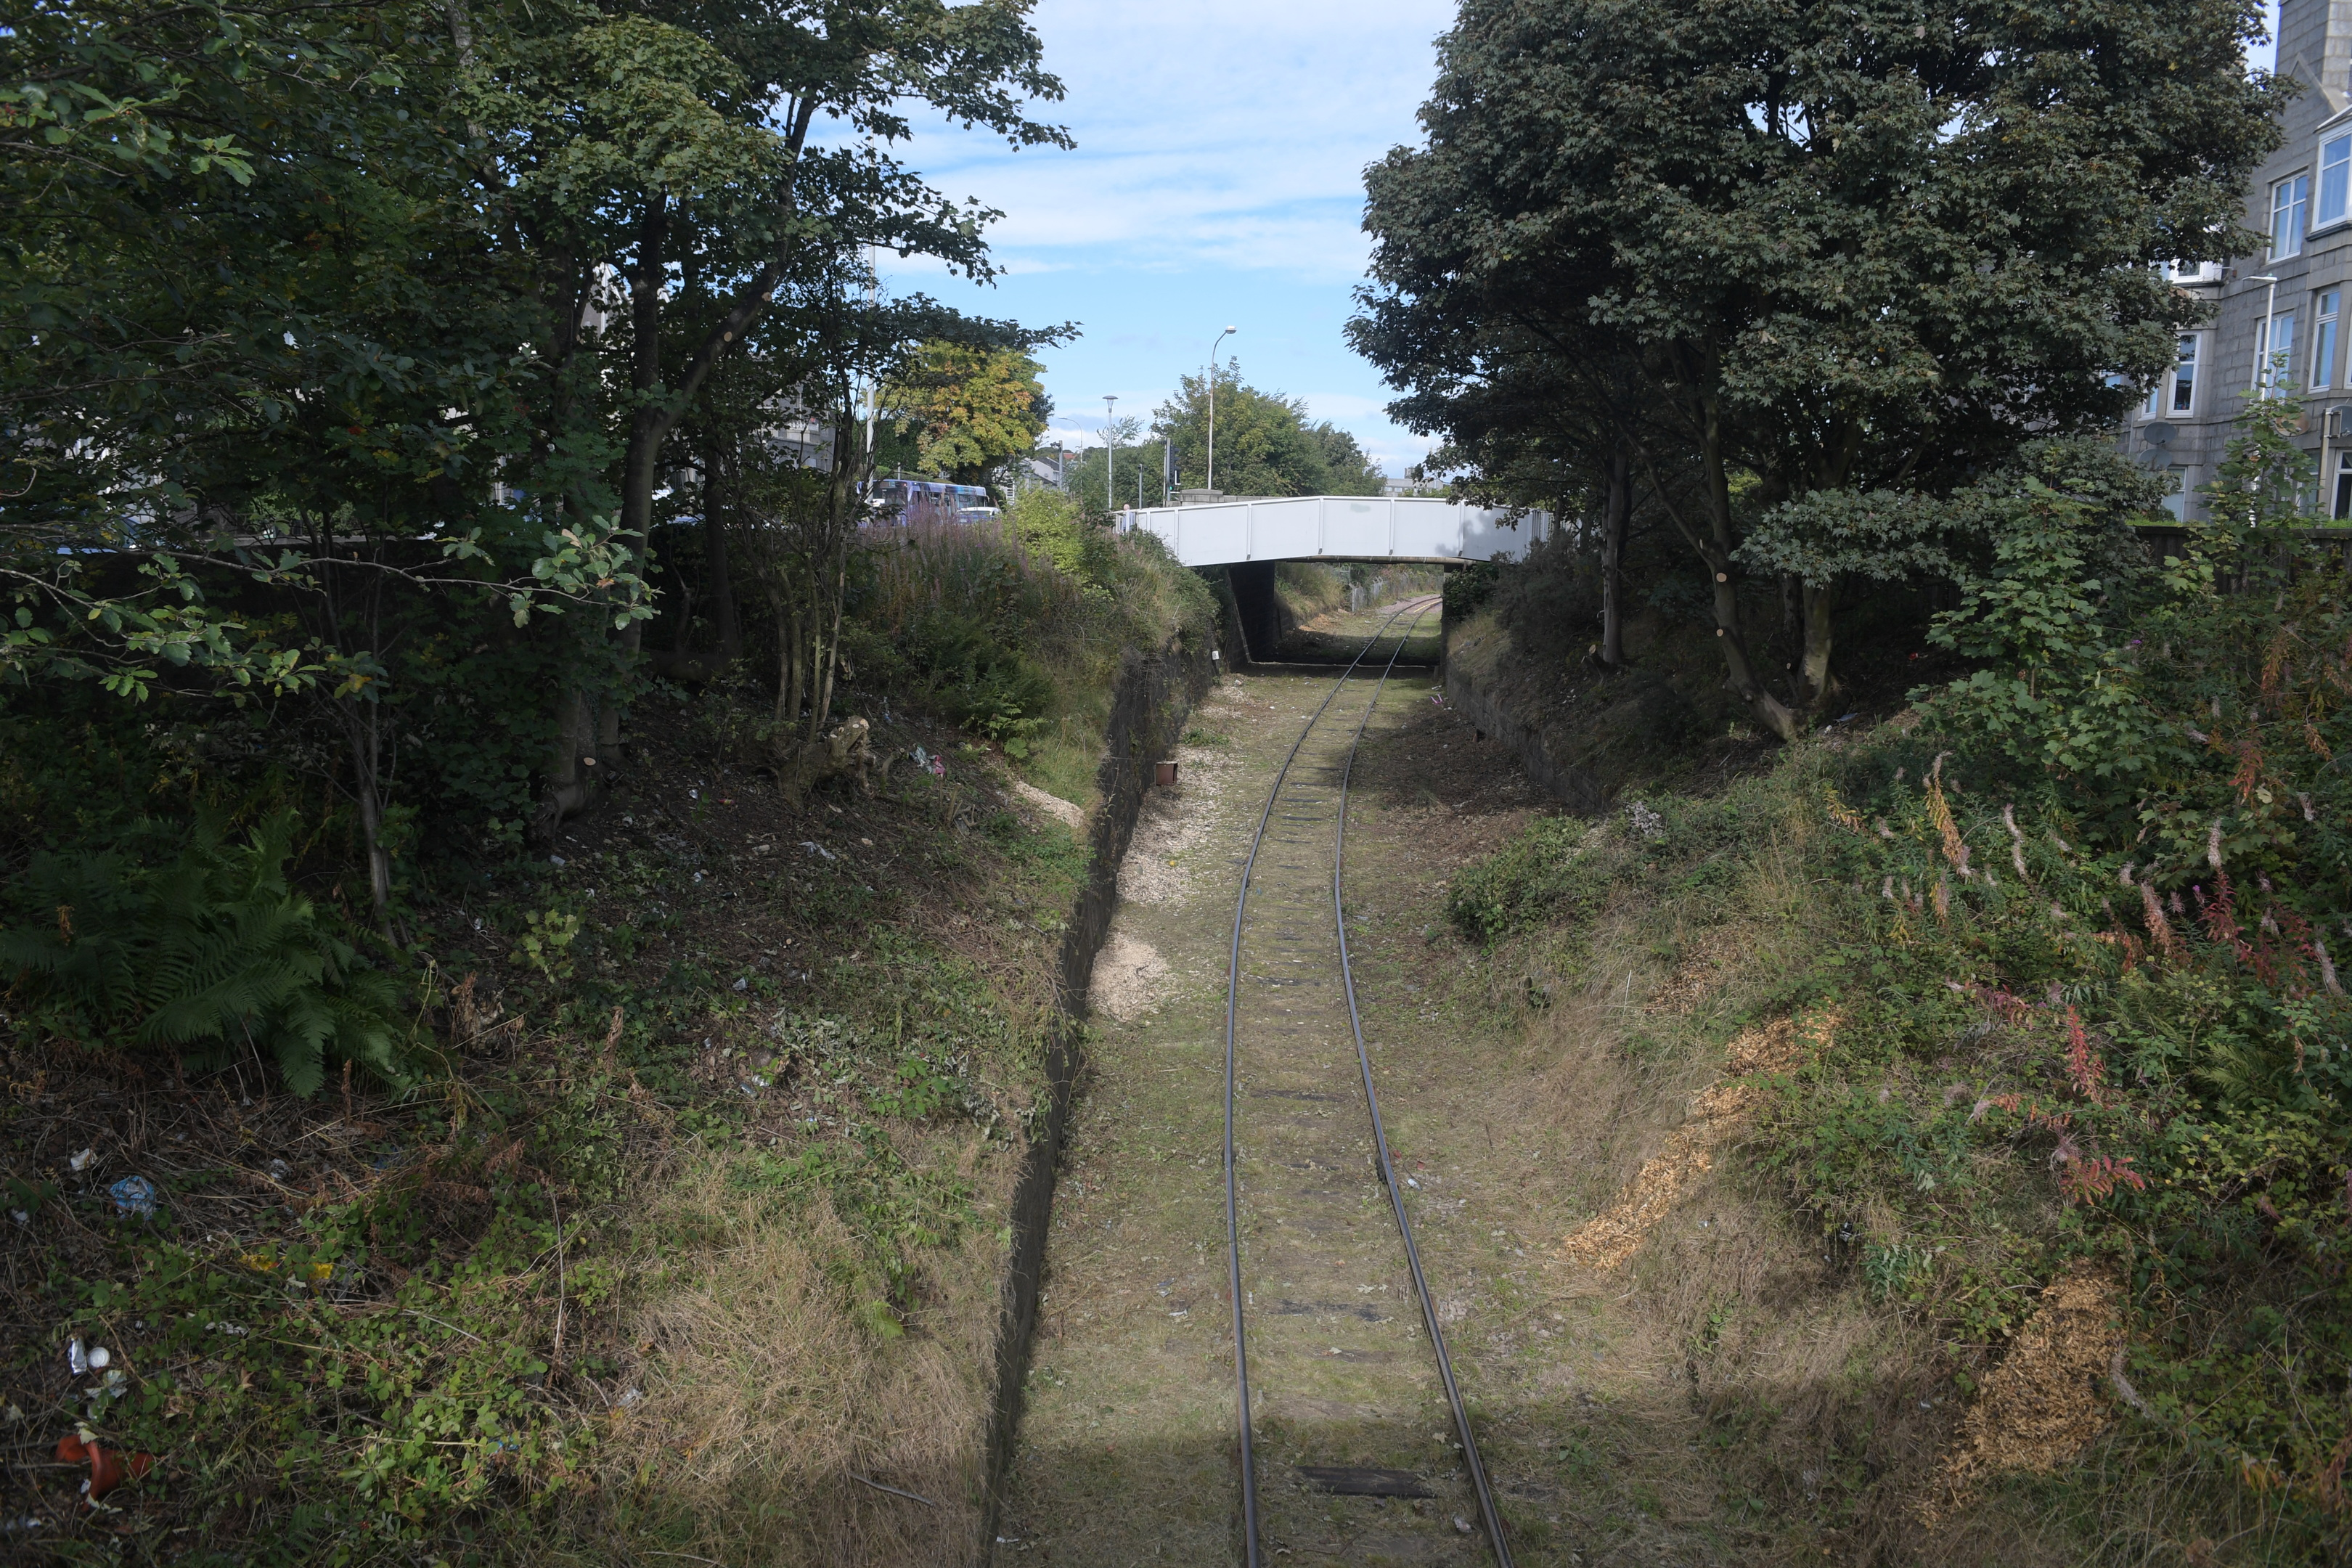 A stretch of the Hanover-Waterloo line near Powis